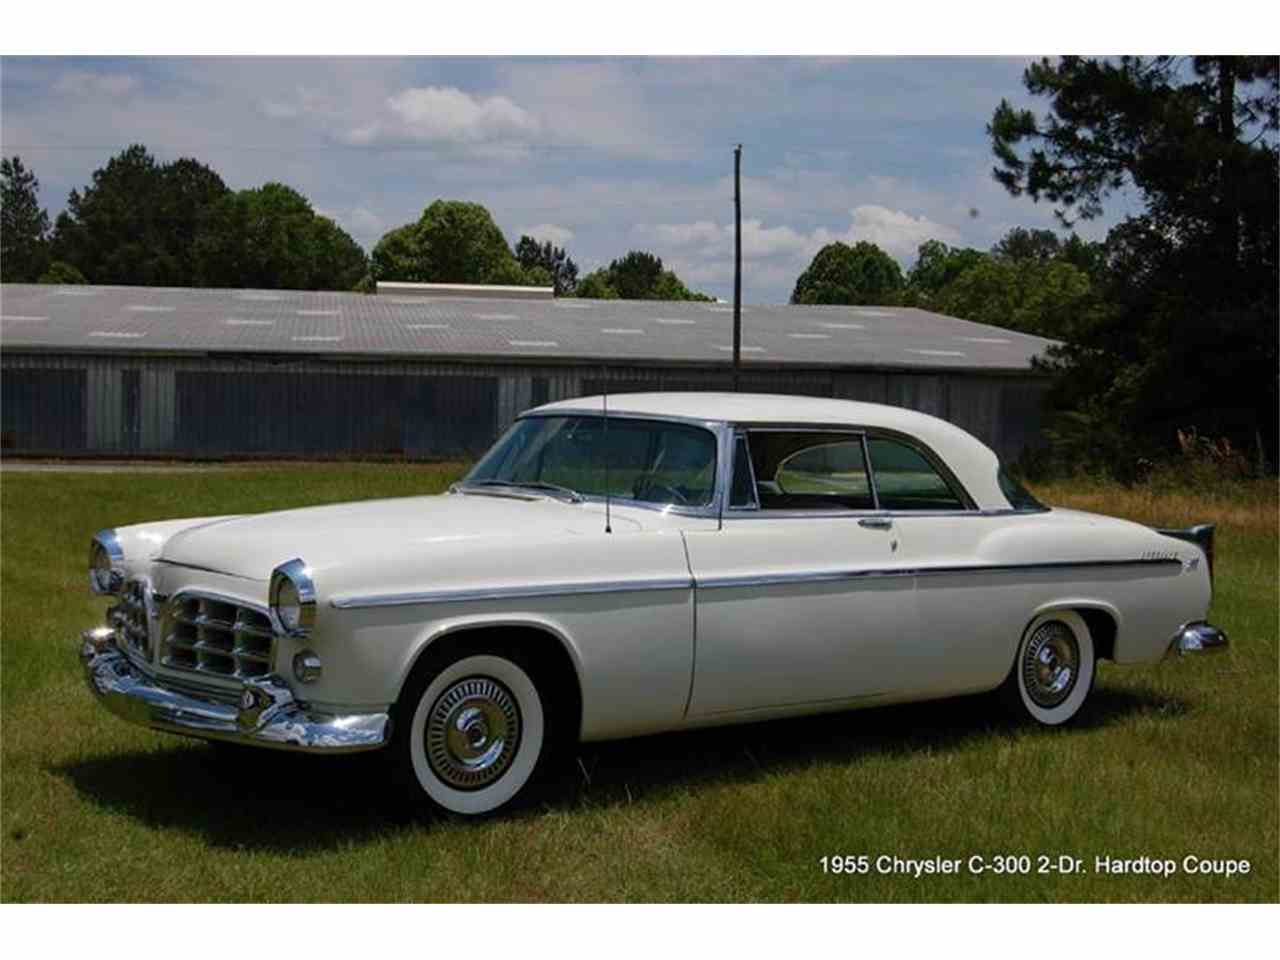 s page driver review photo reviews warranty space in depth chrysler original storage coupe cargo model car and